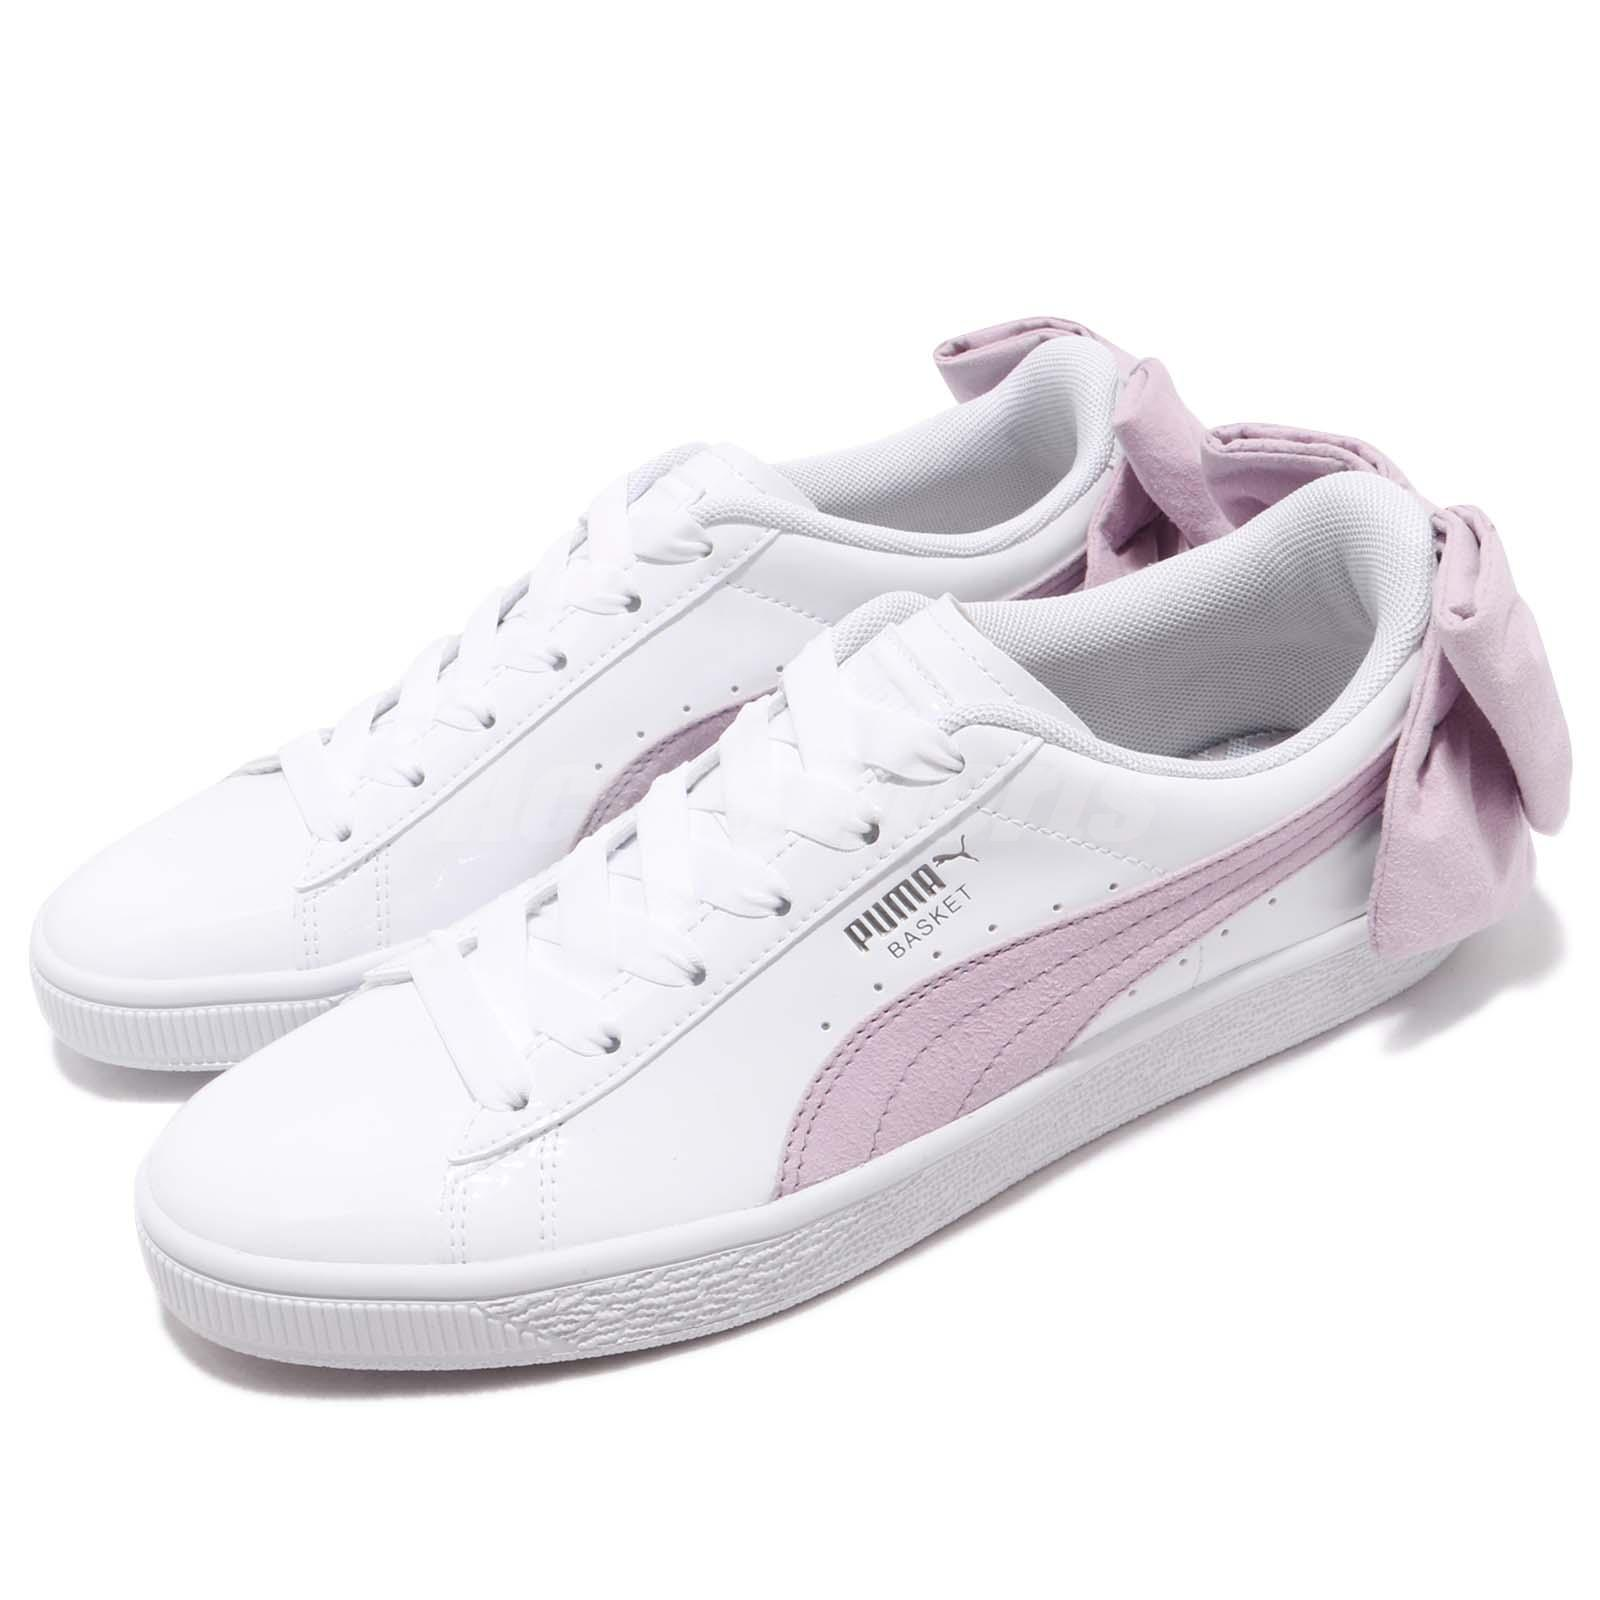 newest 9a3ef 1b9c7 Details about Puma Basket Bow SB Wns White Winsome Orchid Women Casual  Shoes Sneaker 367353-02